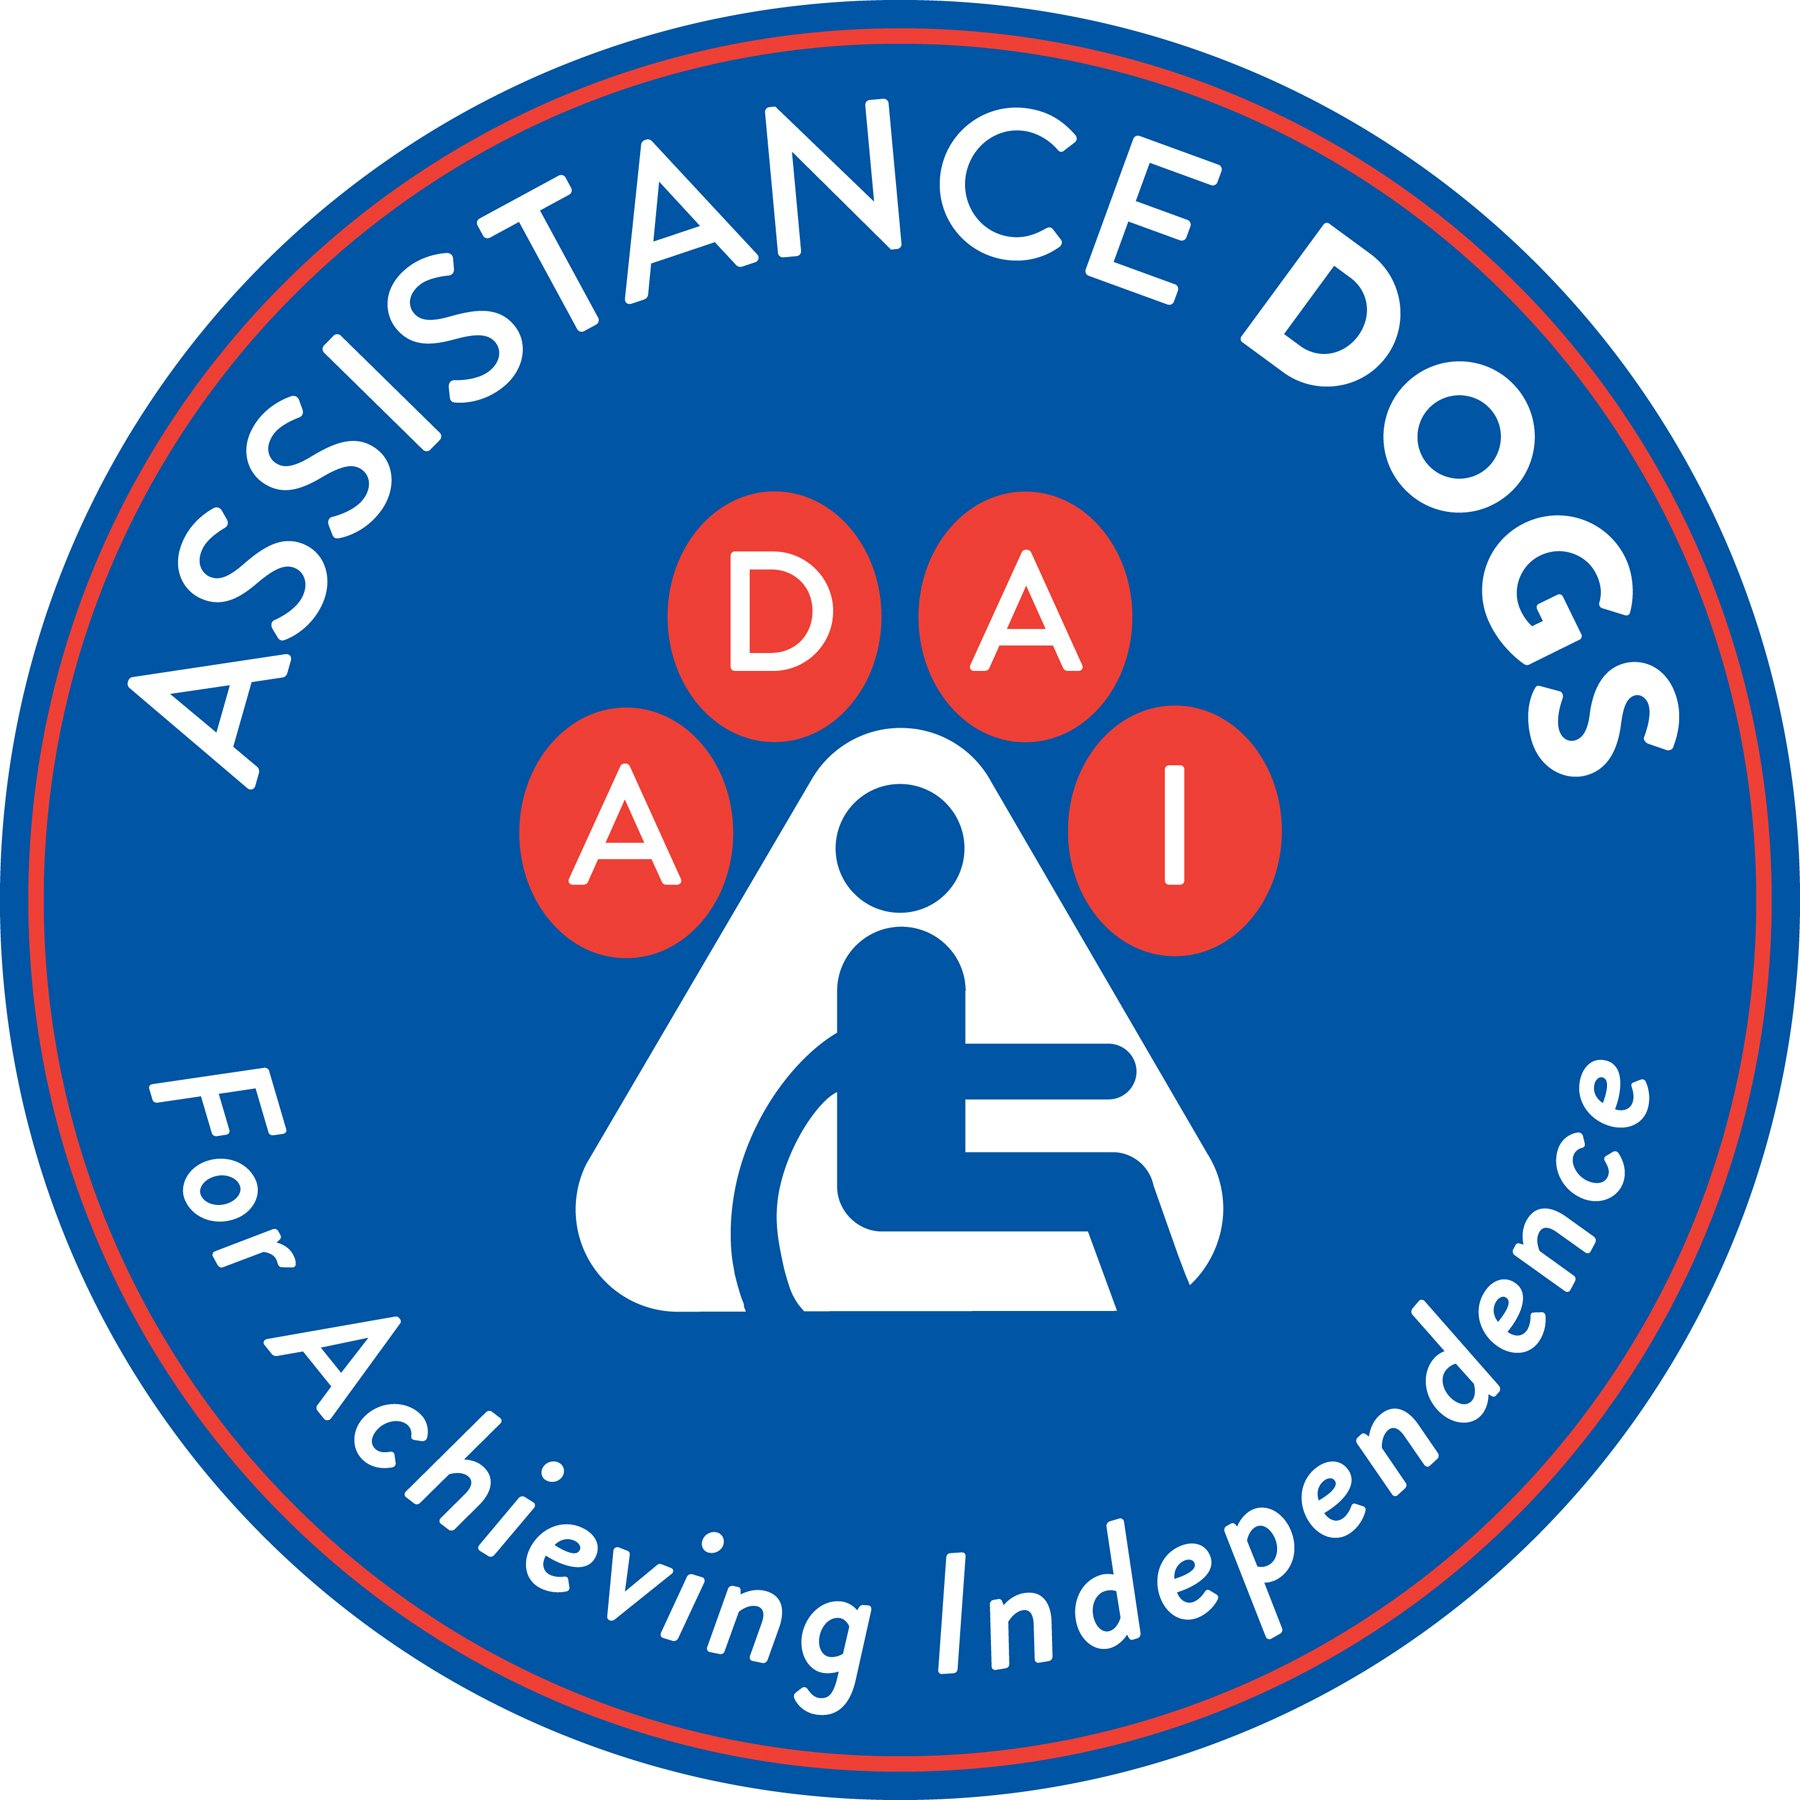 Assistance Dogs for Acheiving Independence